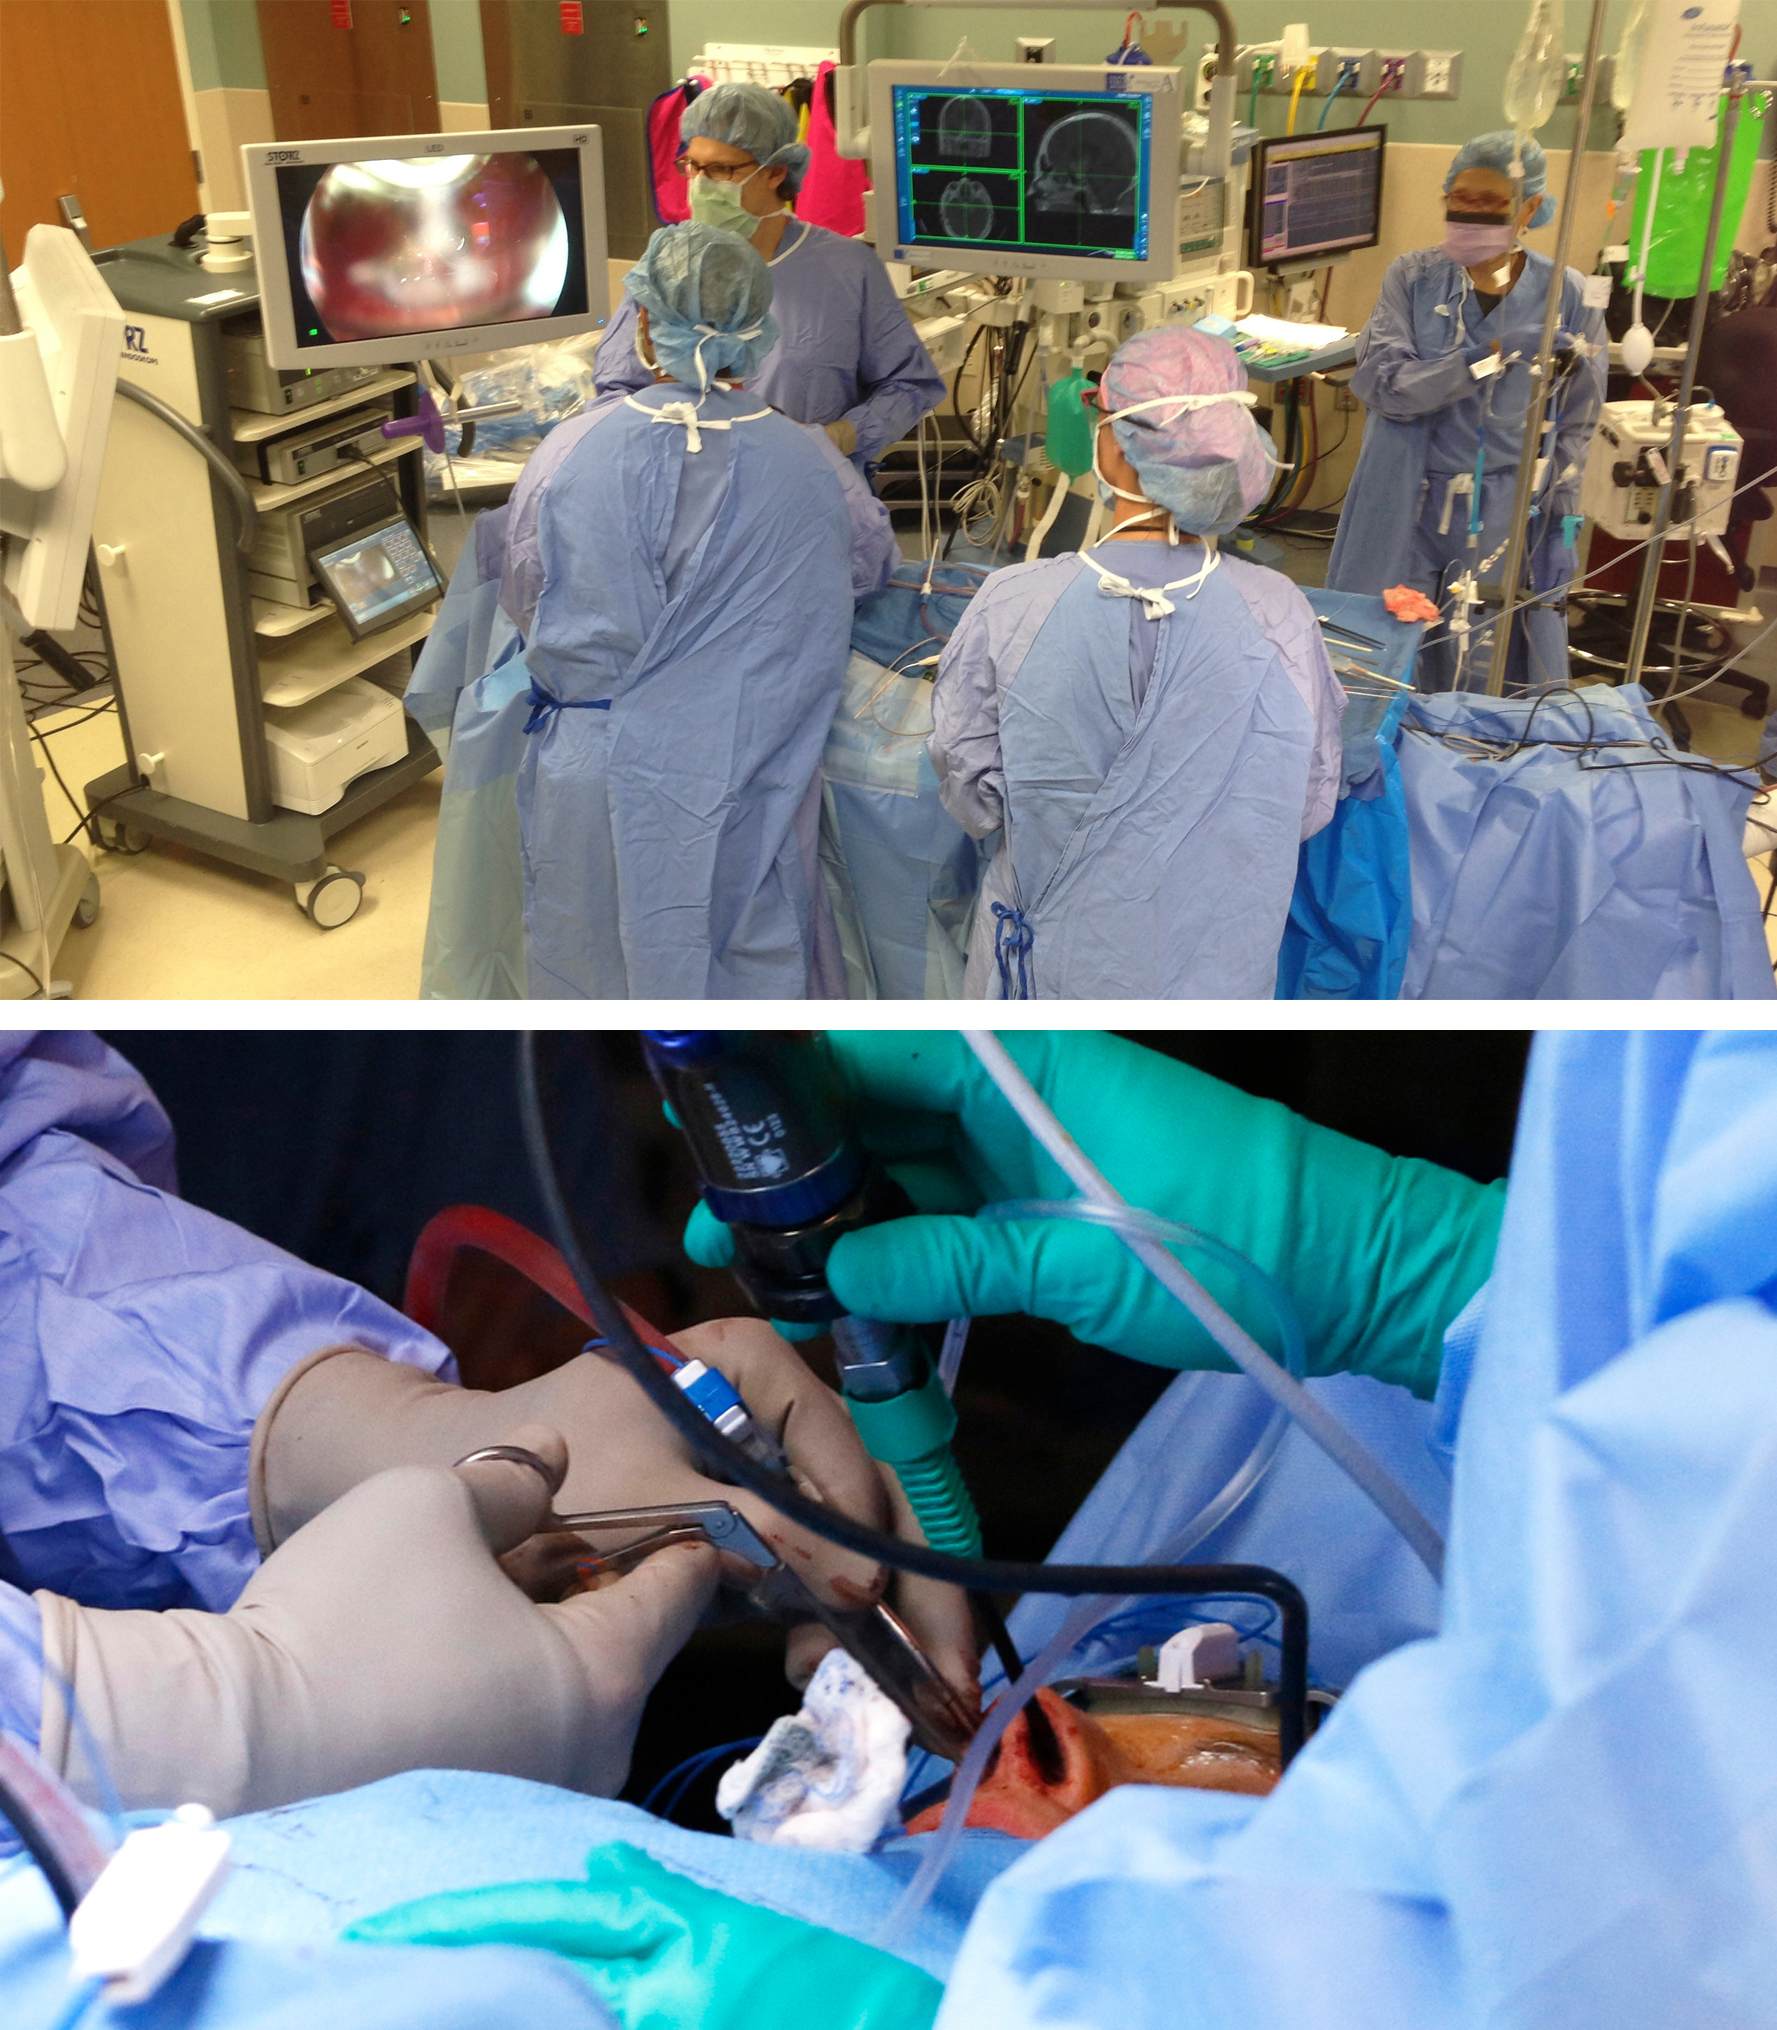 """Figure 1: The operating room setup for an endoscopic skull base procedure is shown (top photo). This setup is fitted for a right-handed surgeon standing on the right side of the patient. Please note the location of the two video monitors across each operating surgeon. The navigation monitor is placed to ensure that the neurosurgeon conducting the microsurgical portions of the operation can view it. The patient's head is turned 30 degrees toward the side of the surgeon so that the surgeon is not leaning over the patient's head. Note the location of the anesthesiologist. The neurosurgeon uses both of the patient's nostrils for microsurgery based on the location of the surgical target relative to the midline. I rely heavily on the """"cross-court"""" approach. In the bottom photo, the left side of the surgical target is aimed at while the endoscope remains in the patient's right nostril. In general, maintaining the suction device and endoscope in one nostril with the endoscope above the suction while using the dissector in the other nostril minimizes the risk of """"swording"""" and provides the highest degrees of surgical freedom and maneuverability for the instruments."""